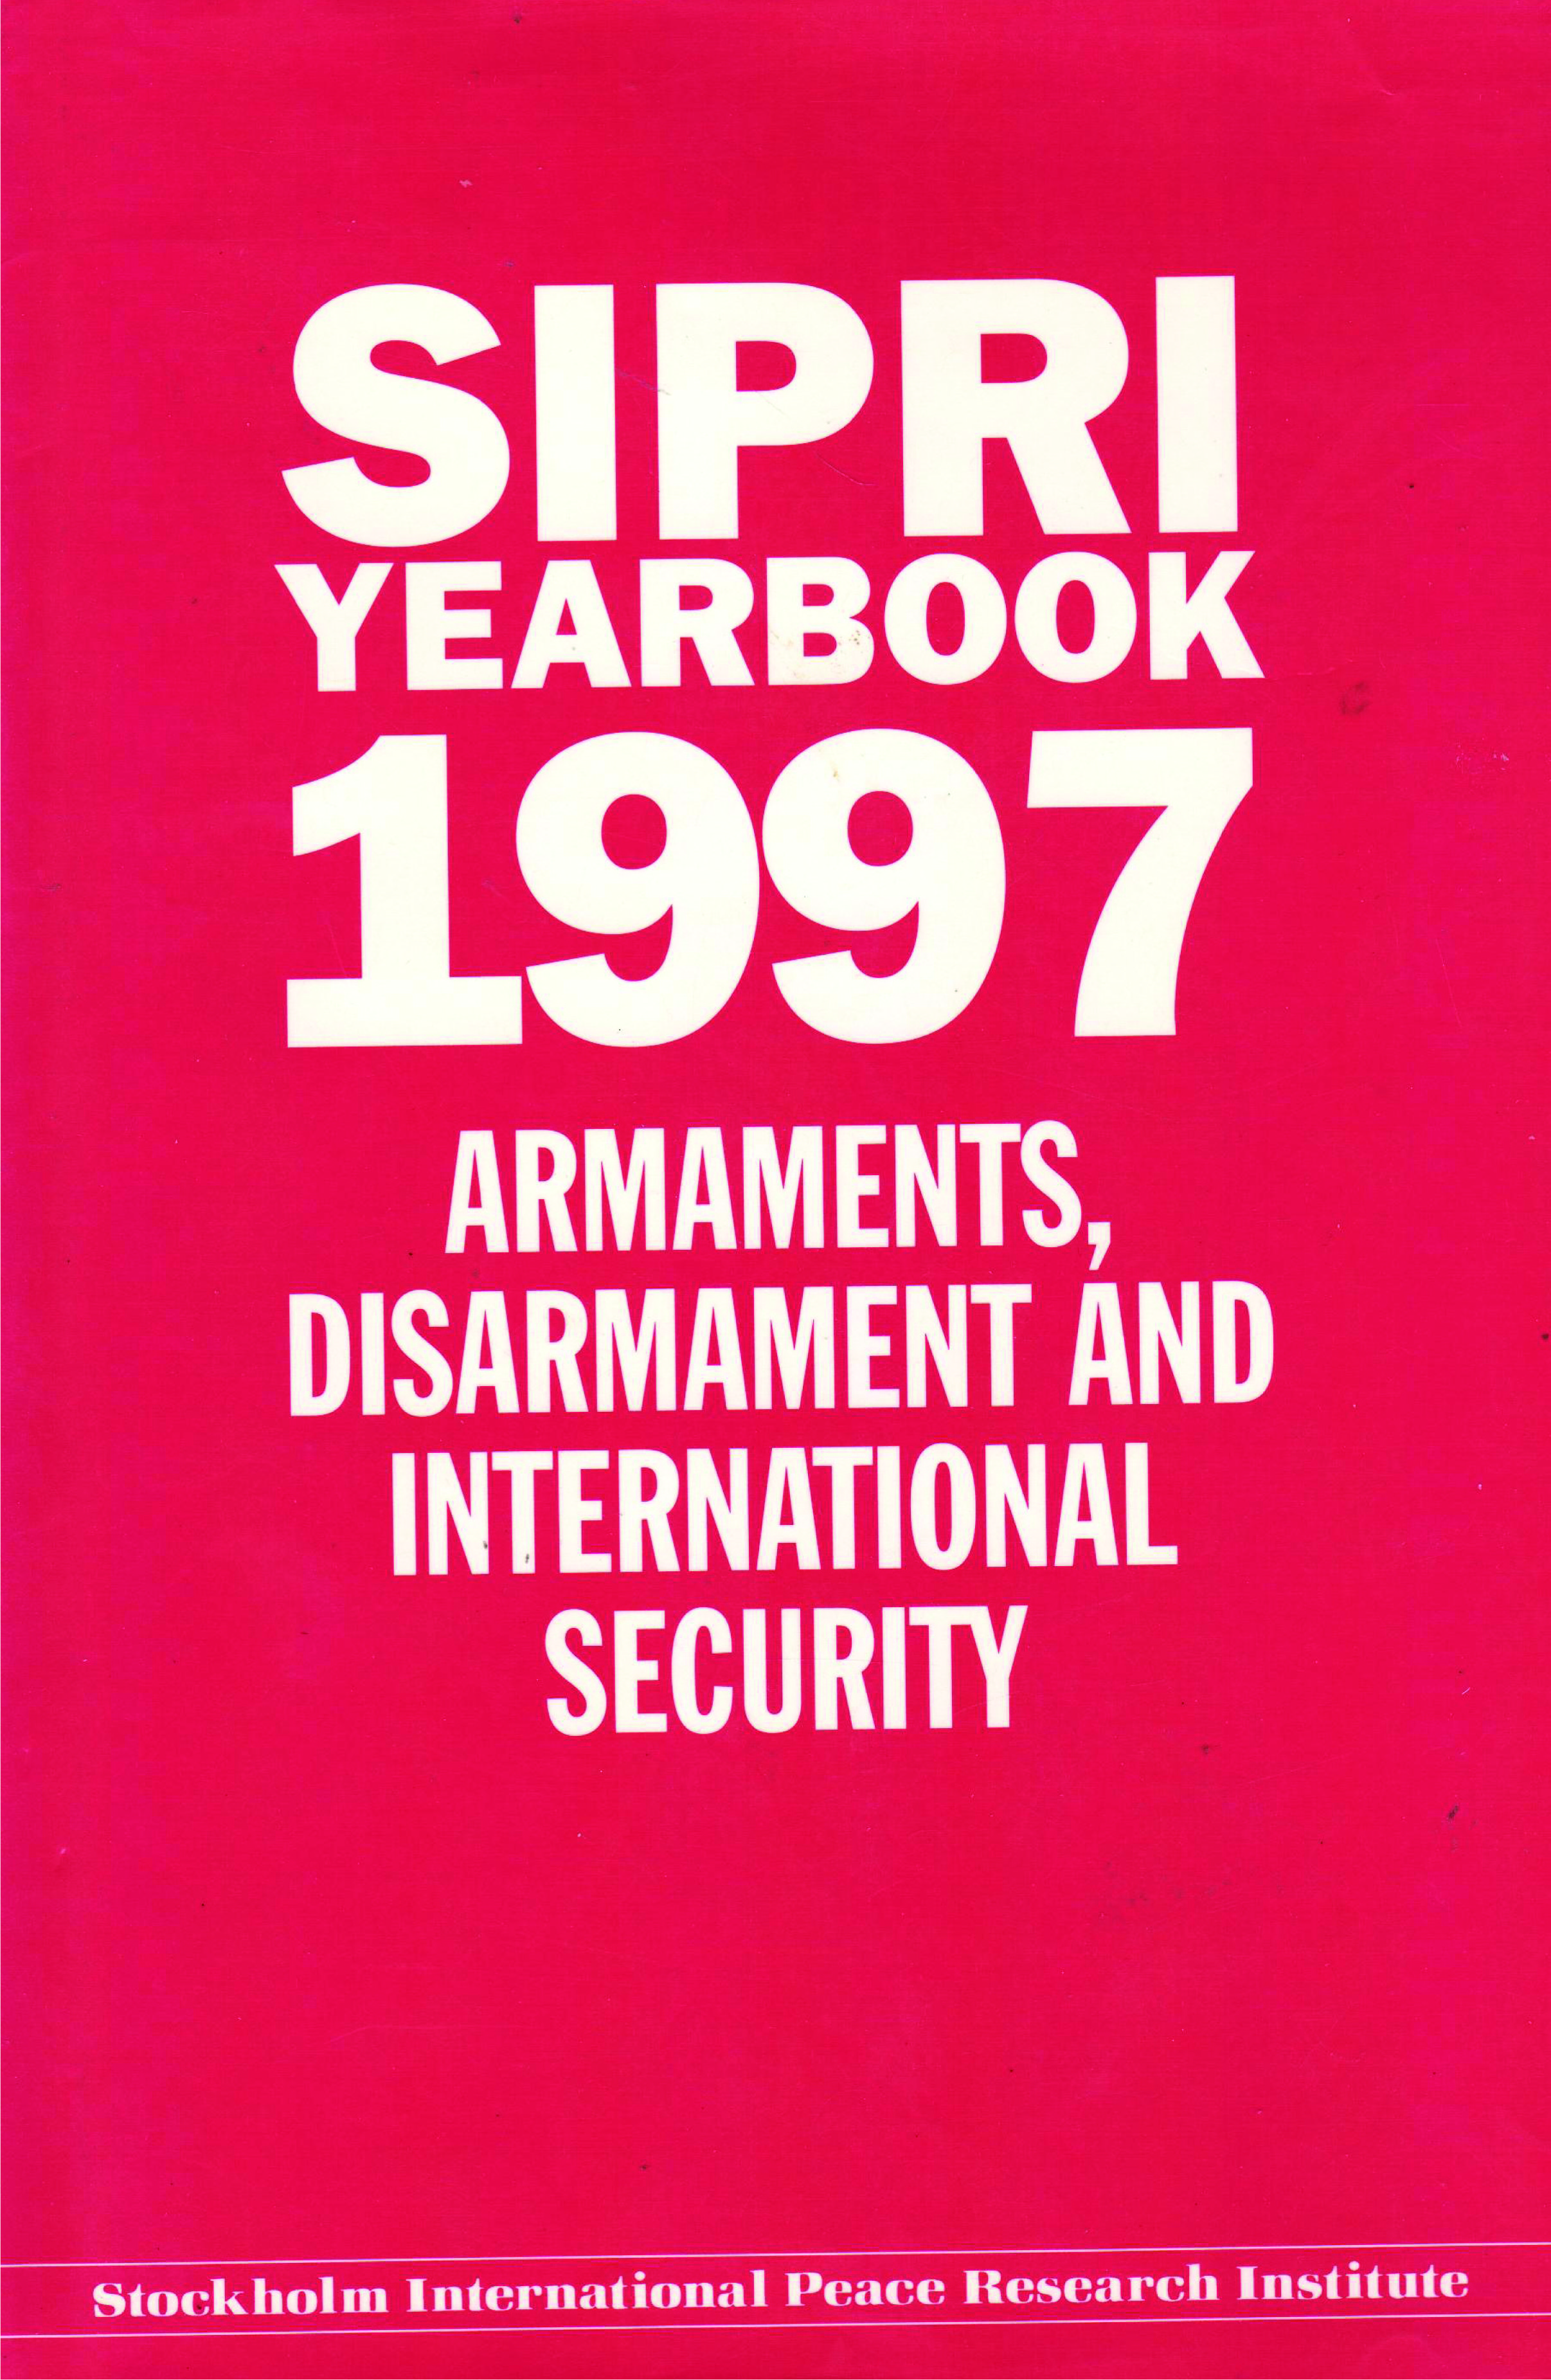 SIPRI yearbook 1997 cover